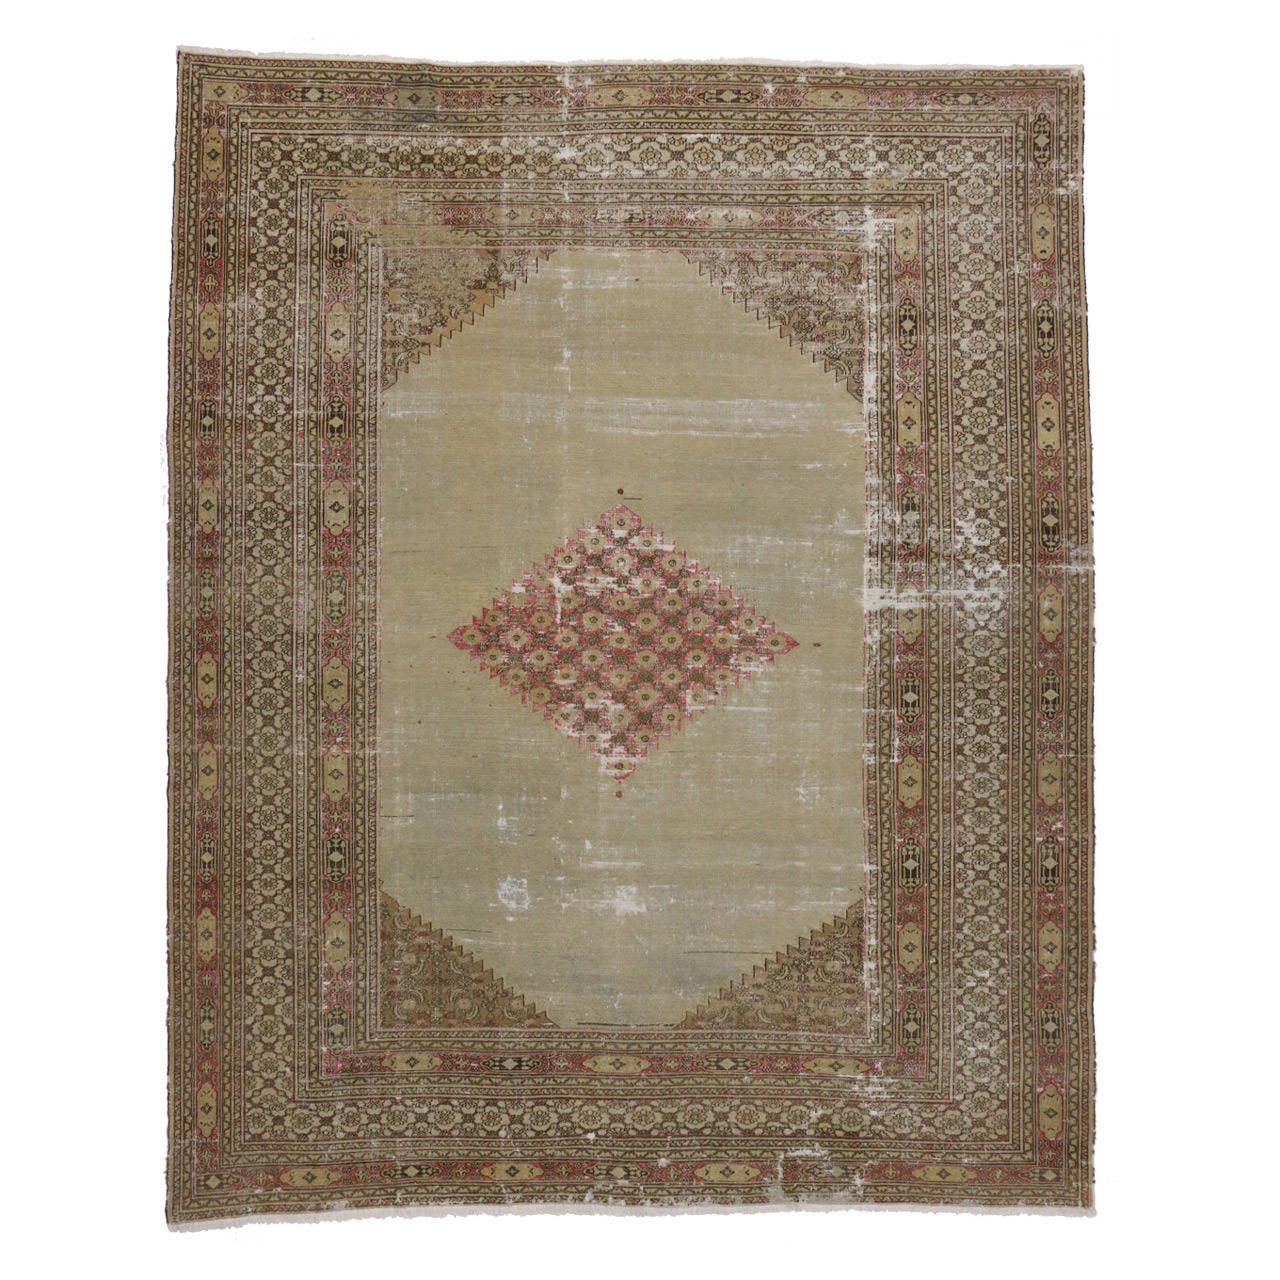 Distressed Antique Persian Khorassan Rug with Modern Industrial Style